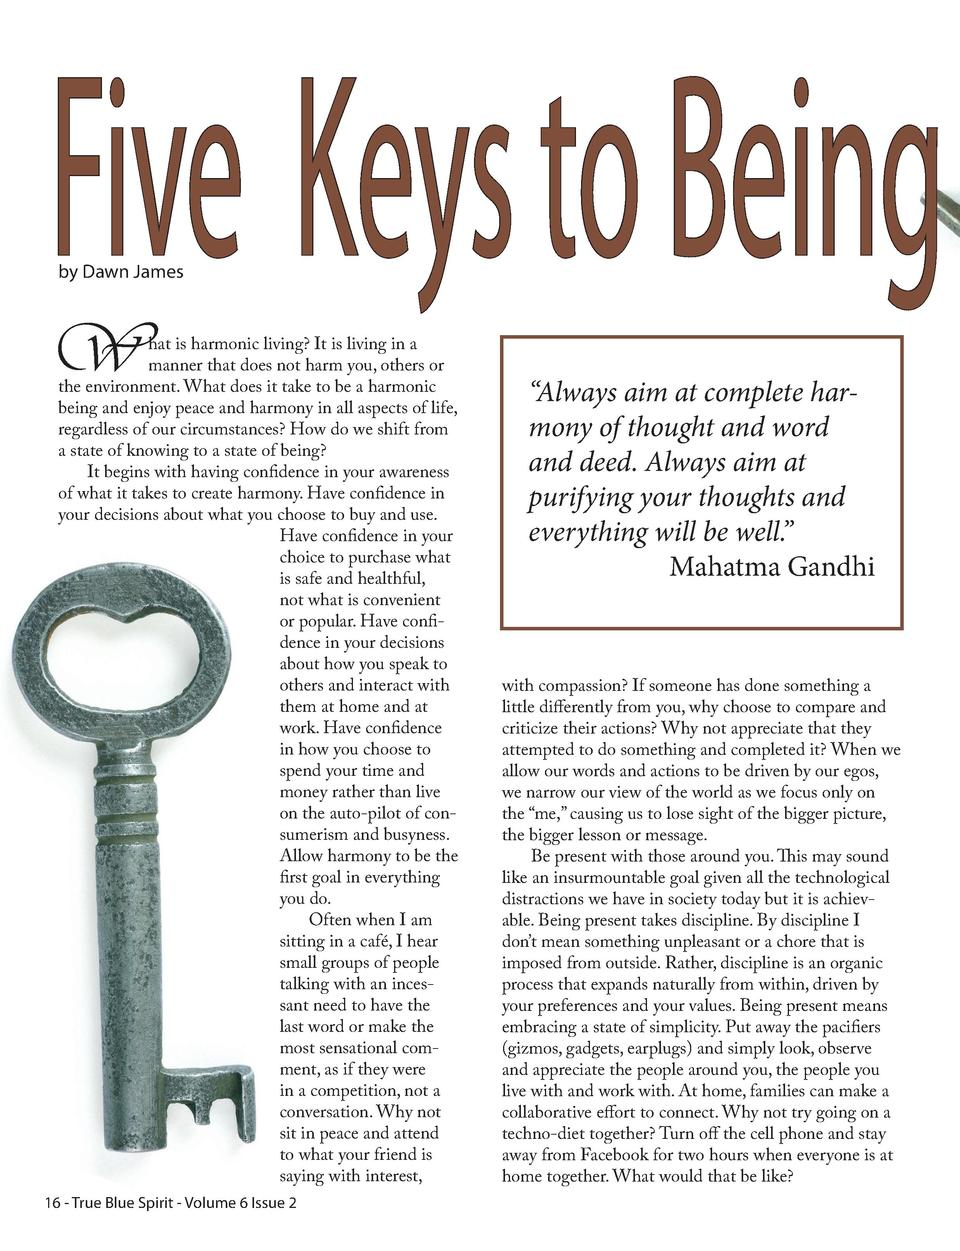 Five Keys to Being by Dawn James  W  hat is harmonic living  It is living in a manner that does not harm you, others or th...